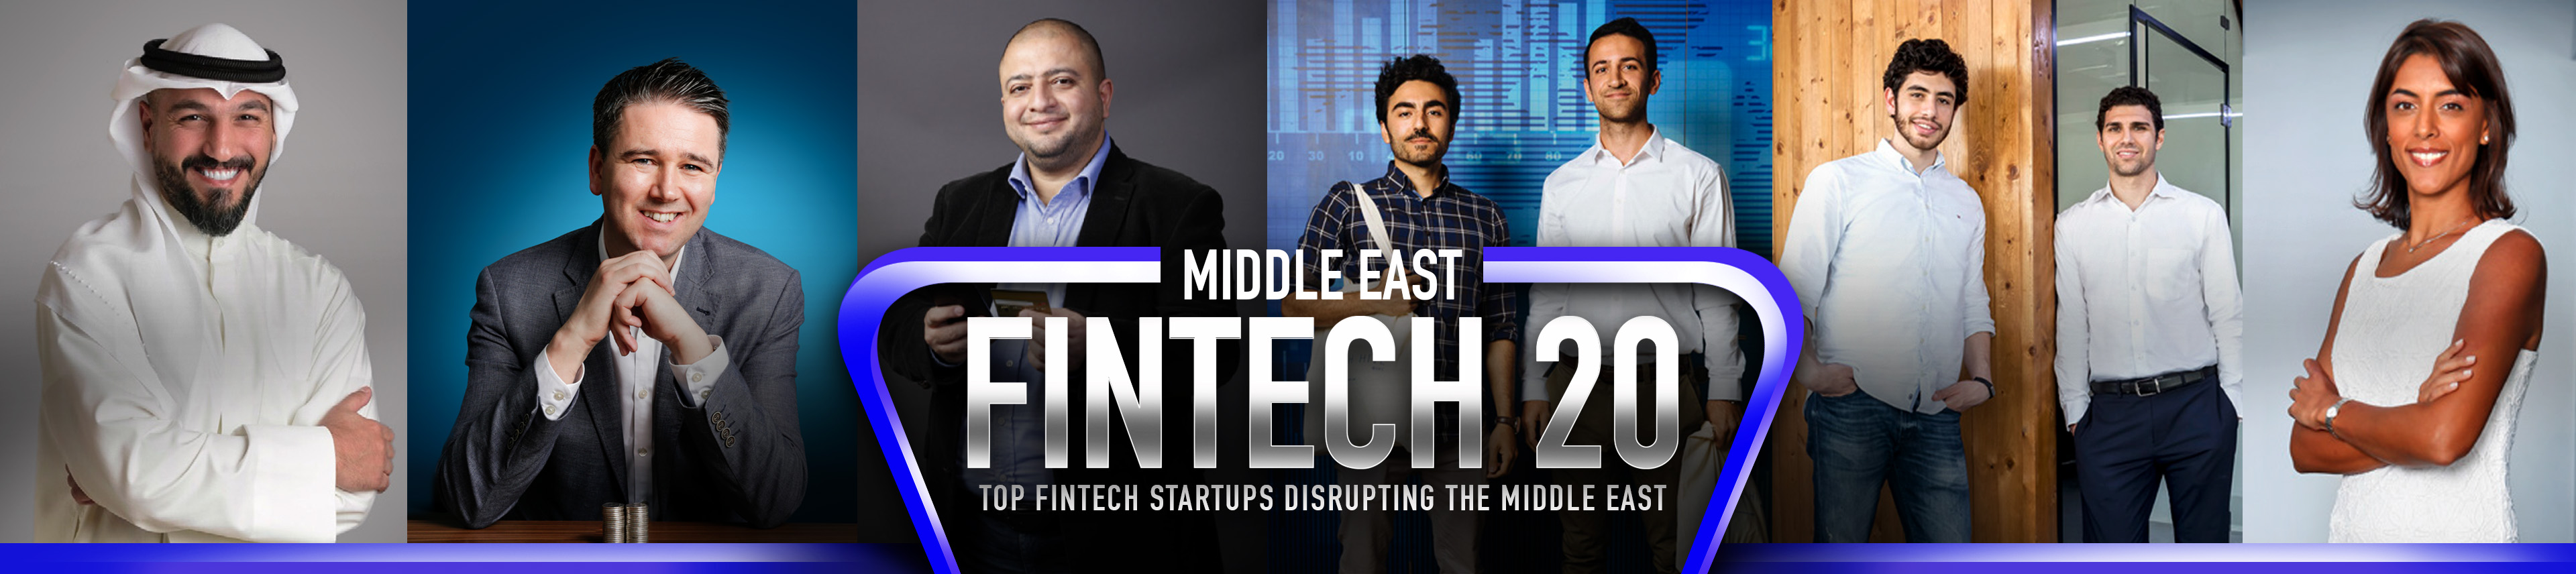 Top 20 Fintech Startups In The Middle East 2018 - Forbes